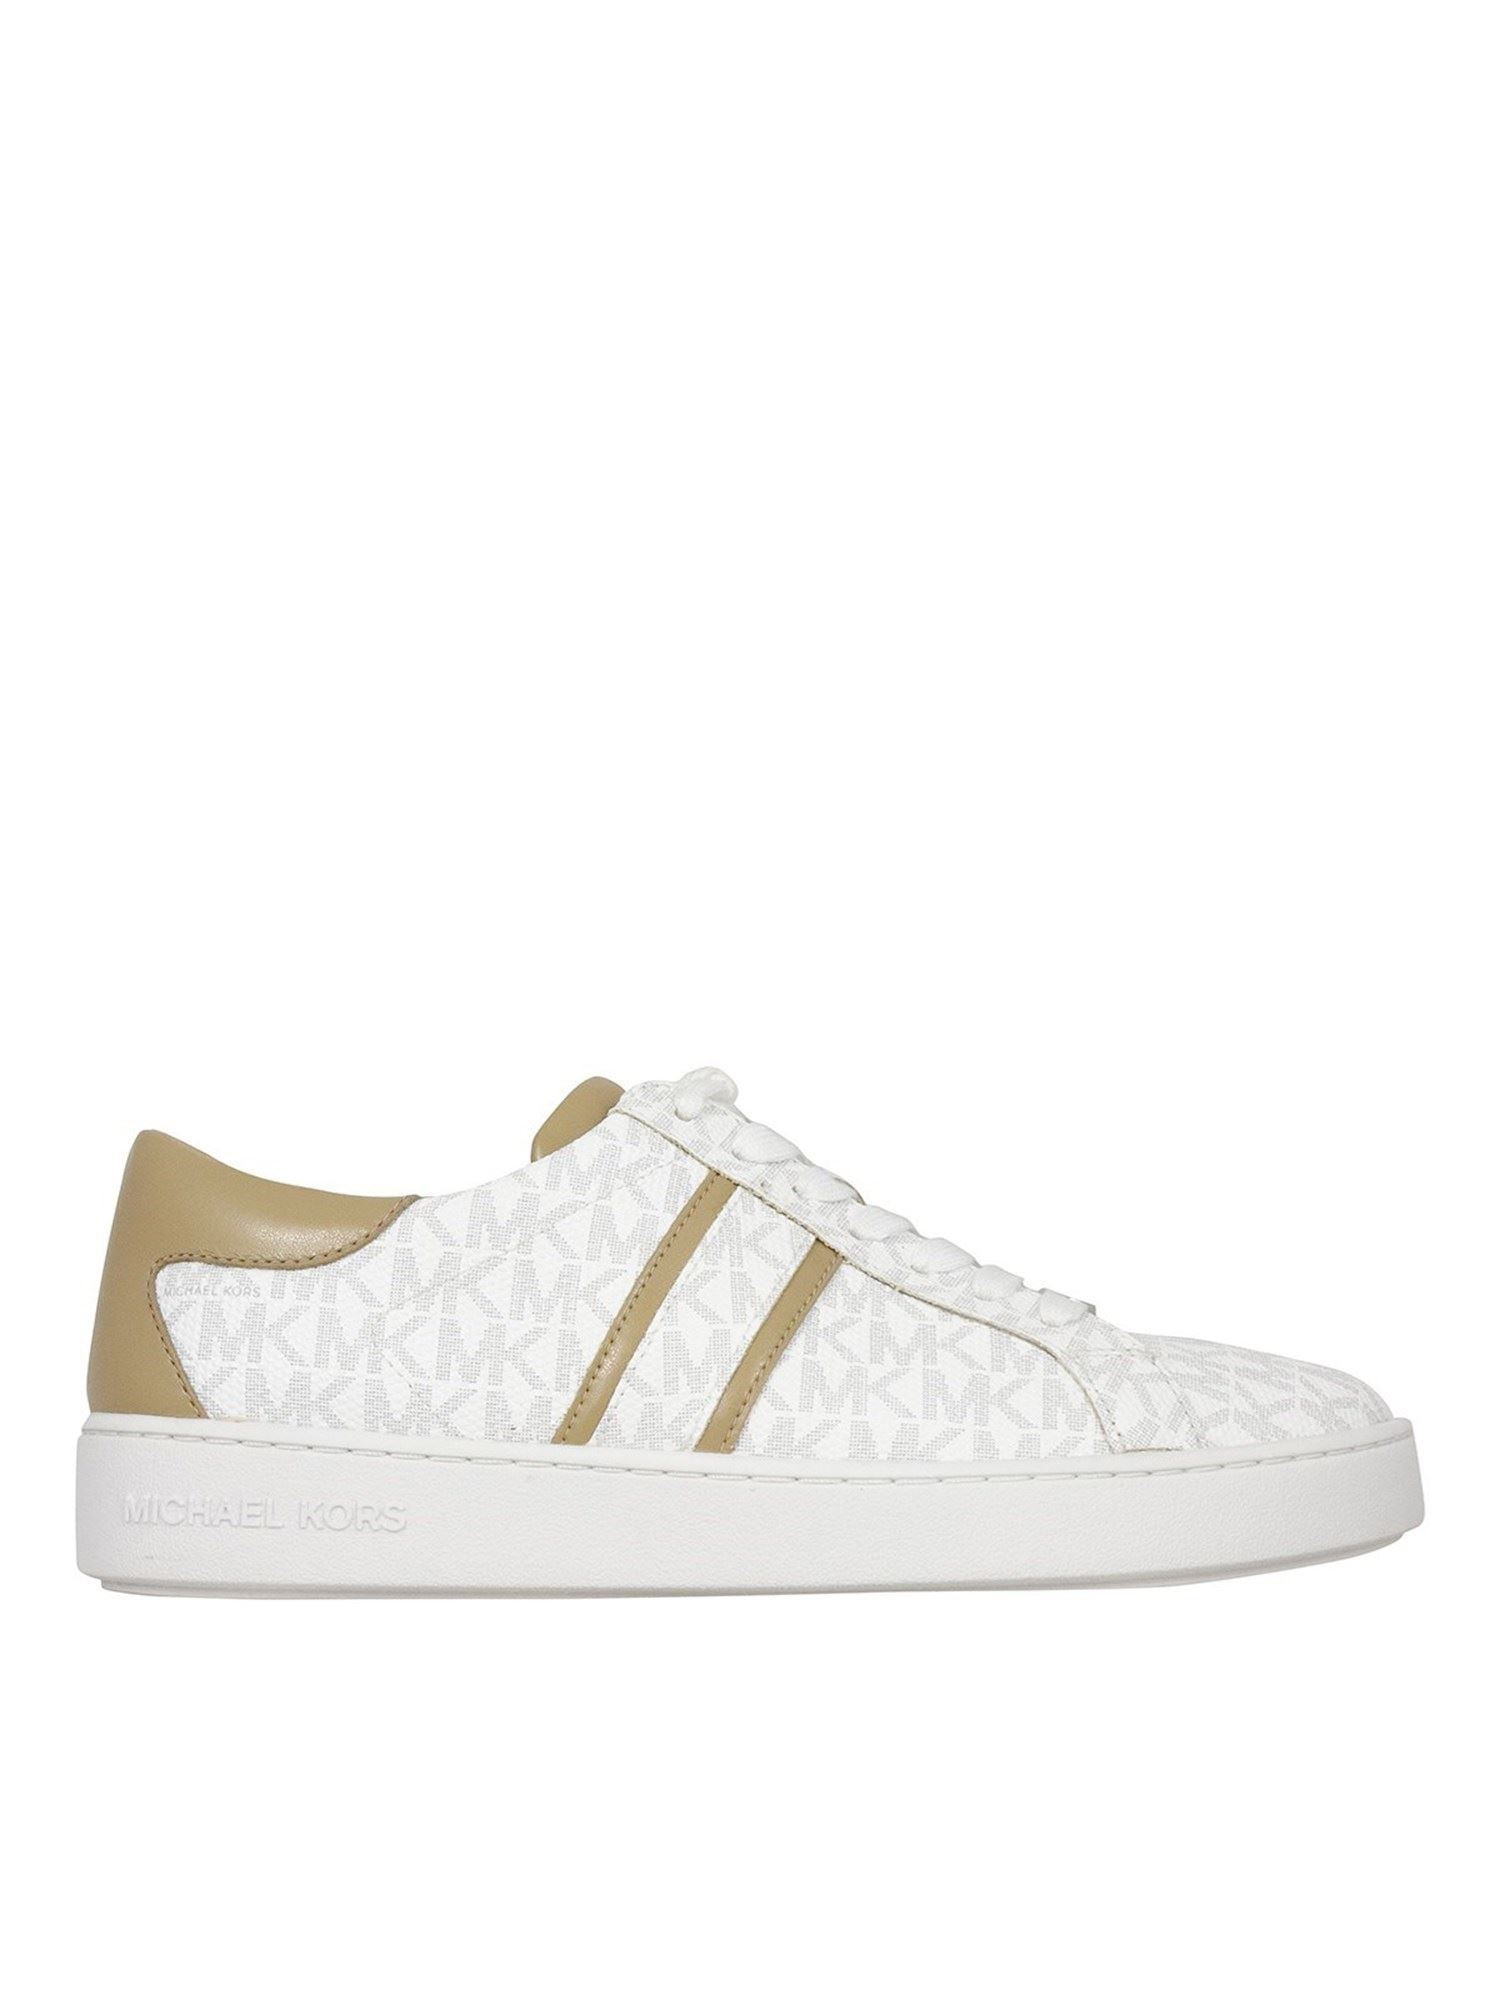 Michael Kors Leathers KEATON SNEAKERS IN WHITE